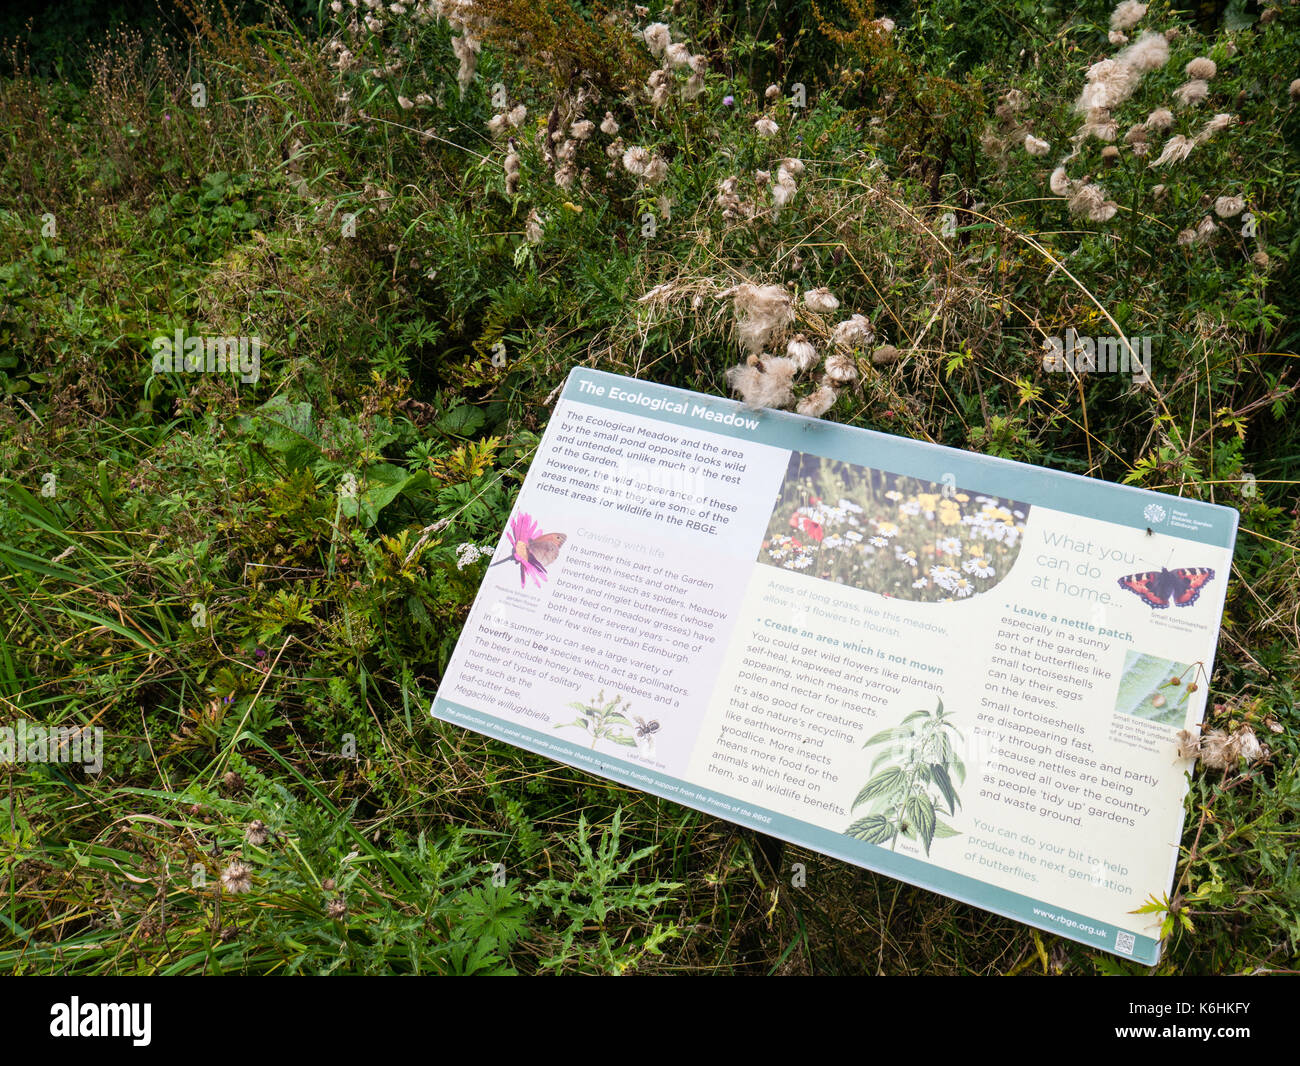 The Ecological Meadow, Royal Botanic Garden Edinburgh, Edinburgh, Scotland - Stock Image